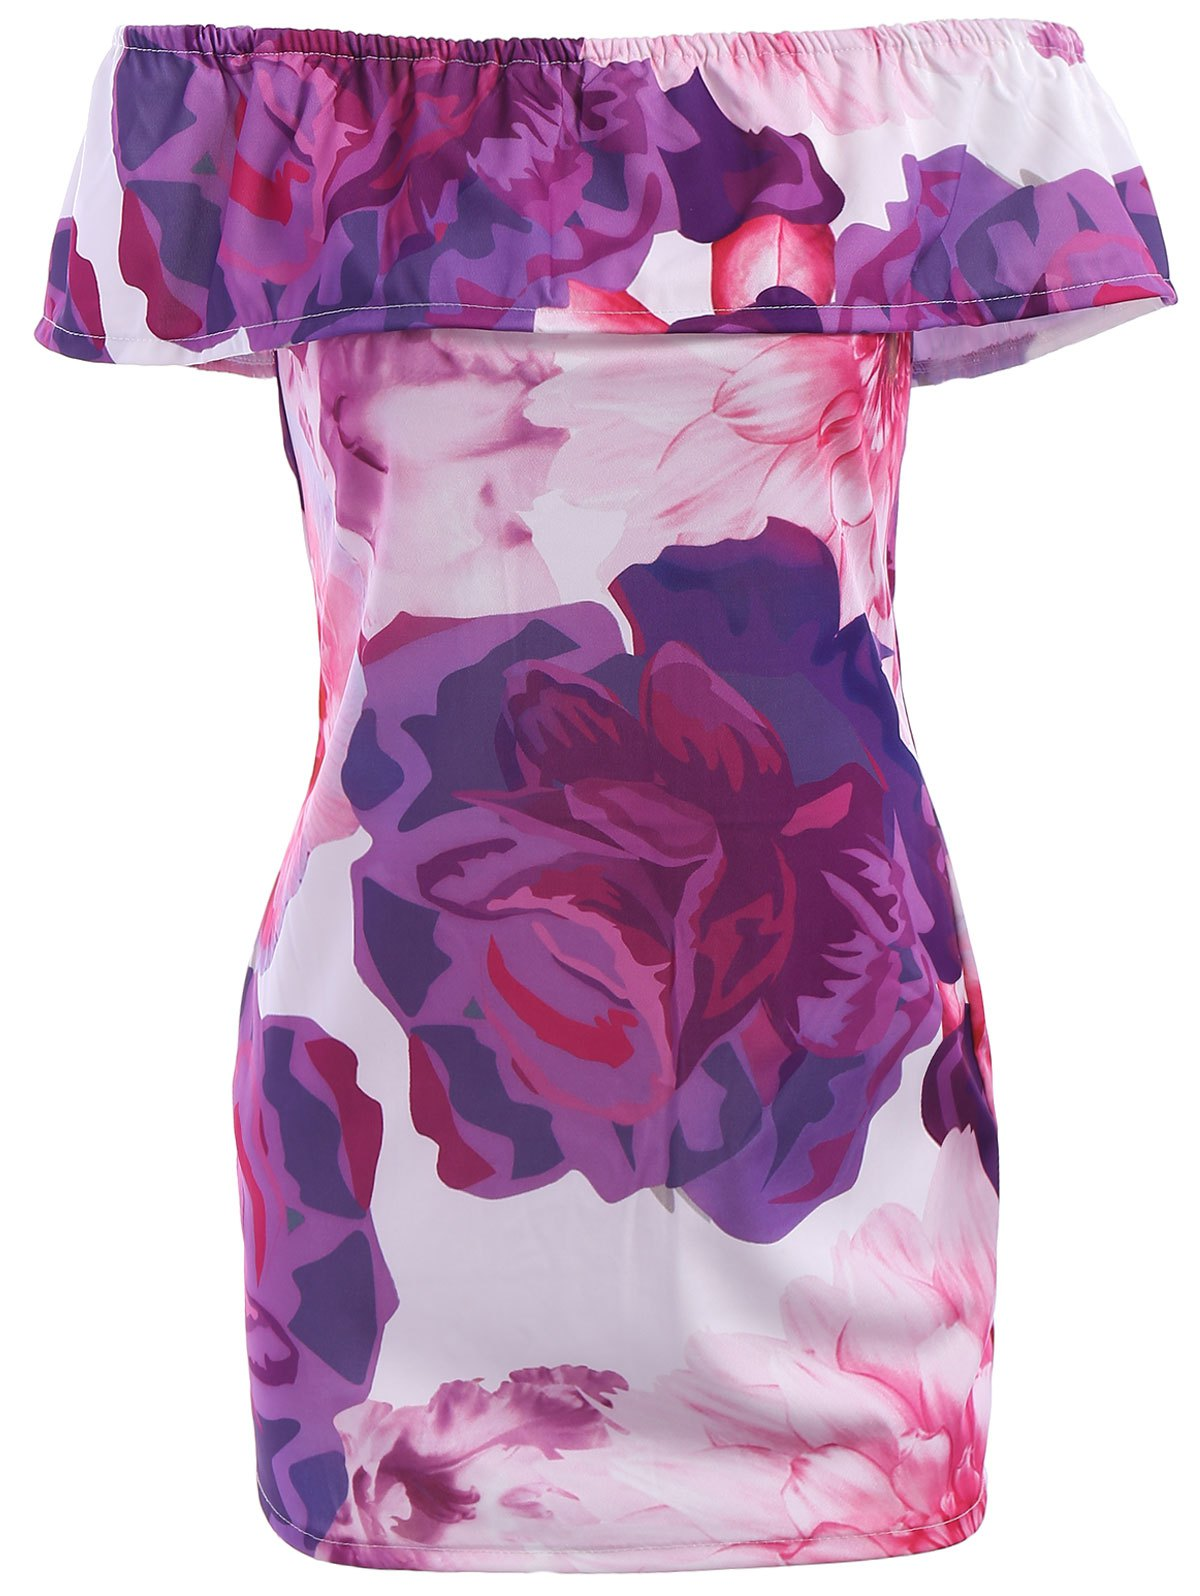 Charming Off-The-Shoulder Half Sleeves Floral Print Women's Dress - PINK/PURPLE S